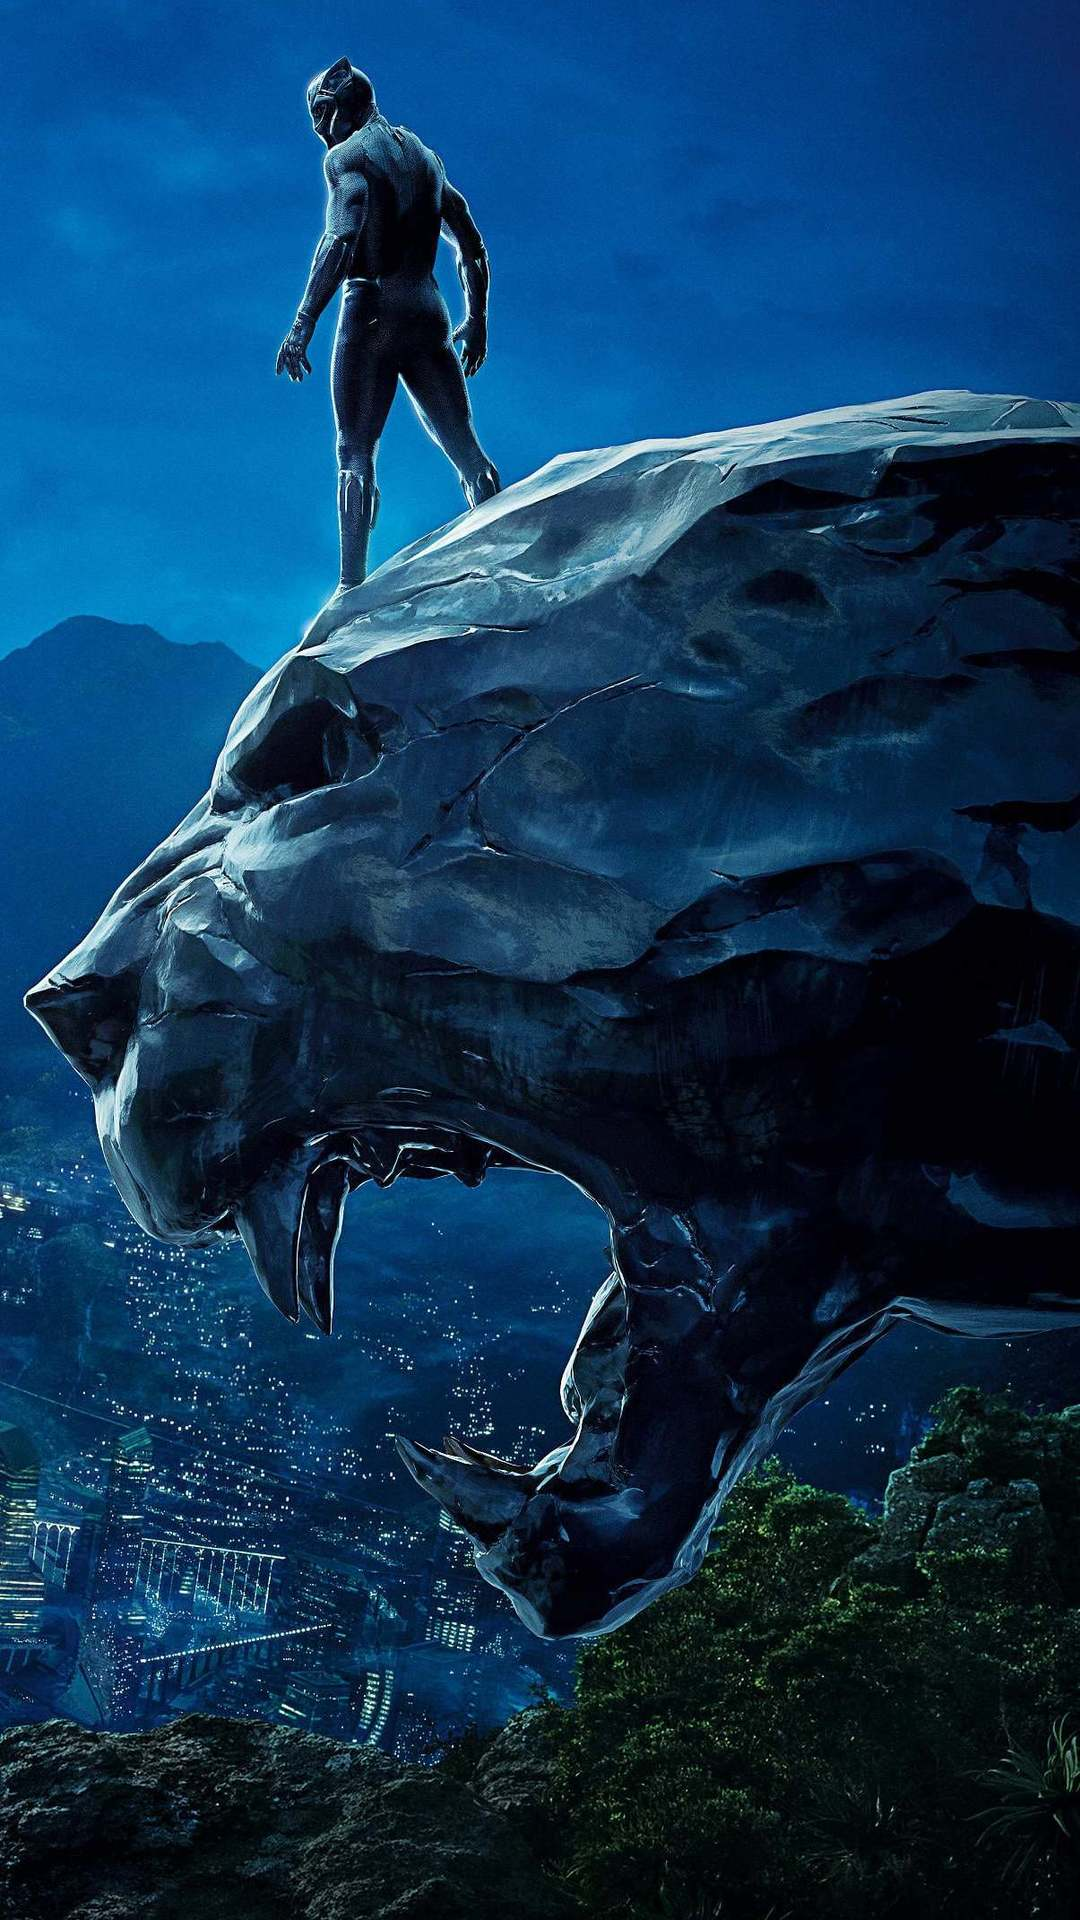 1080x1920 Black Panther Movie HD Wallpaper for iPhone X, 8/8 Plus, 7/7 ...